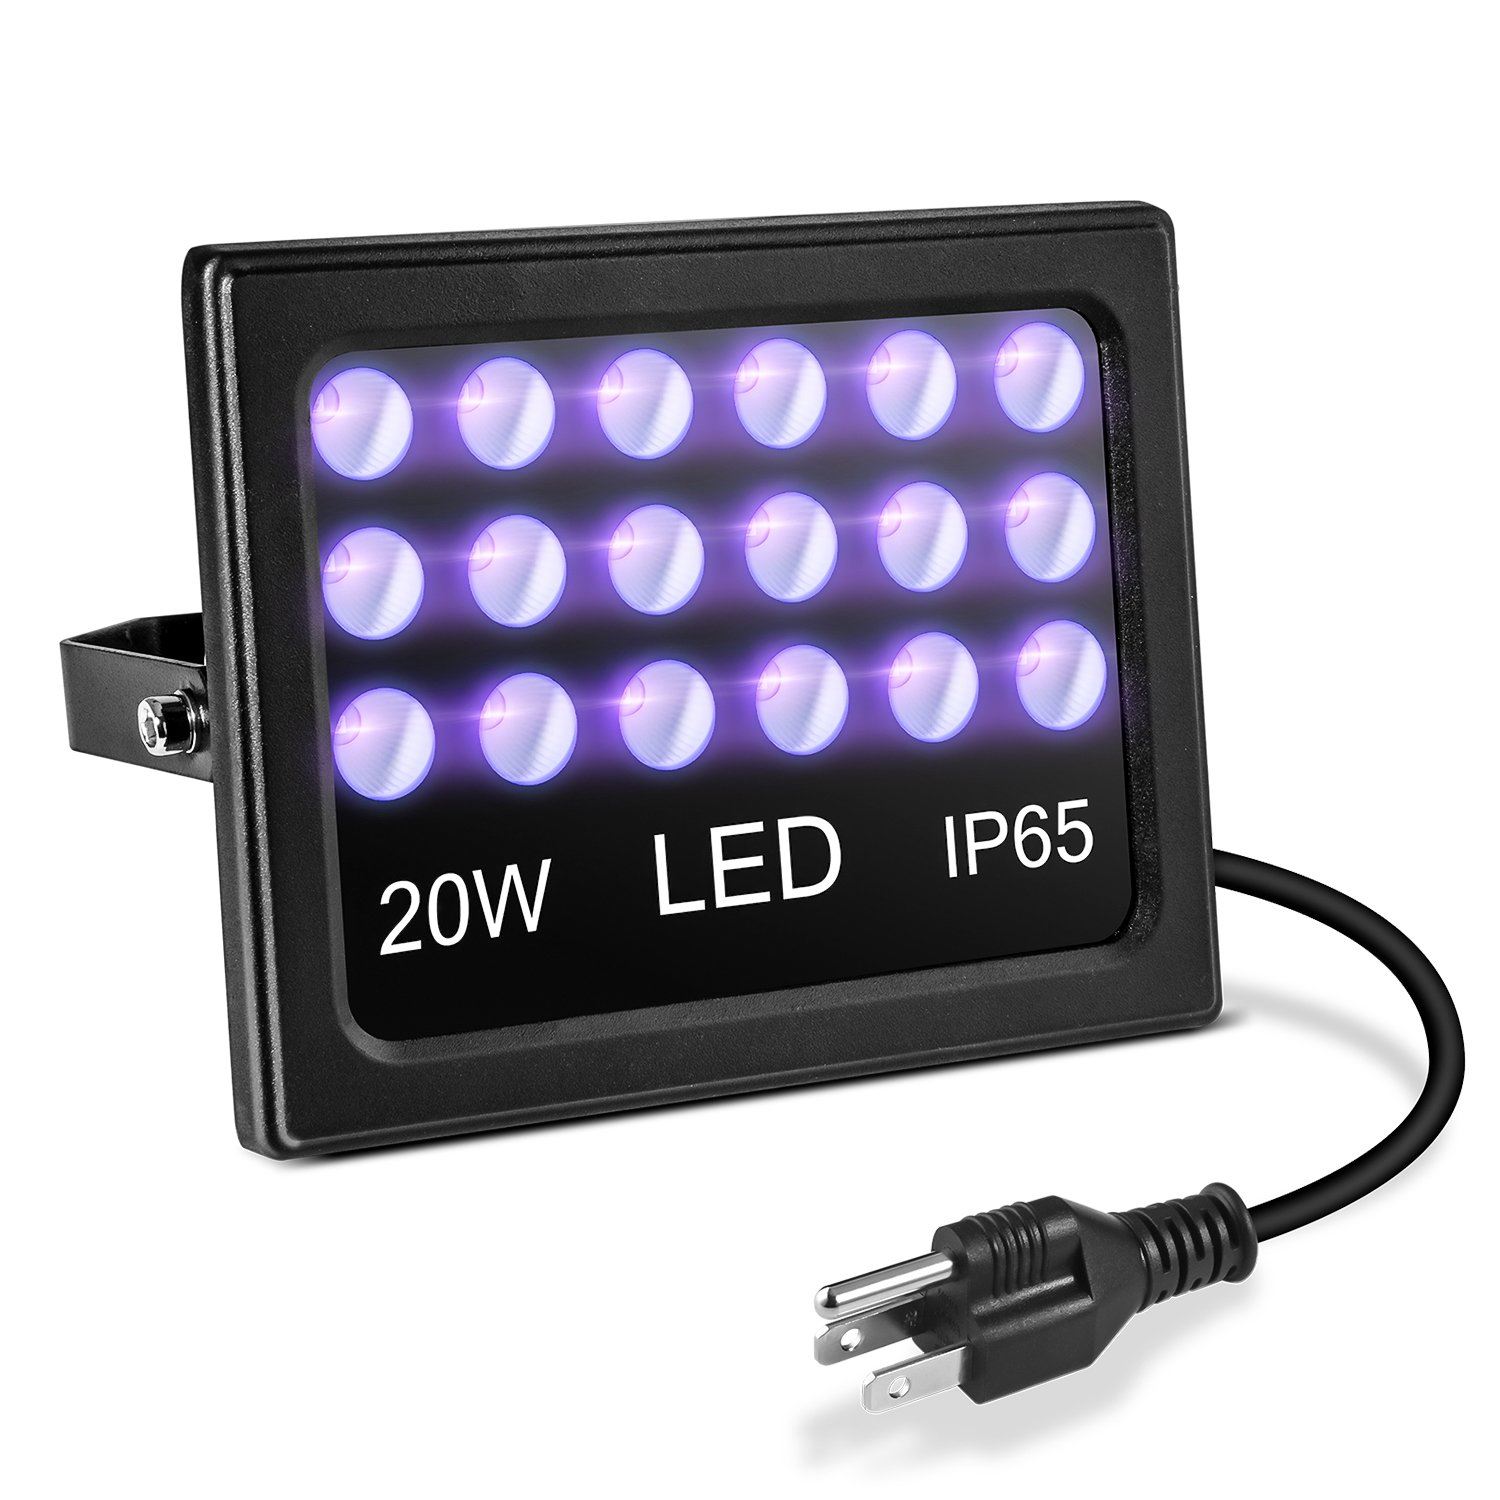 AFANTY 30W LED Black Light, with US Plug, 395nm UV LED Blacklight, IP66 Waterproof UV Light, for Indoor and Outdoor Black Light Party Supplies, Glow in The Dark, Fluorescent Paint King Star